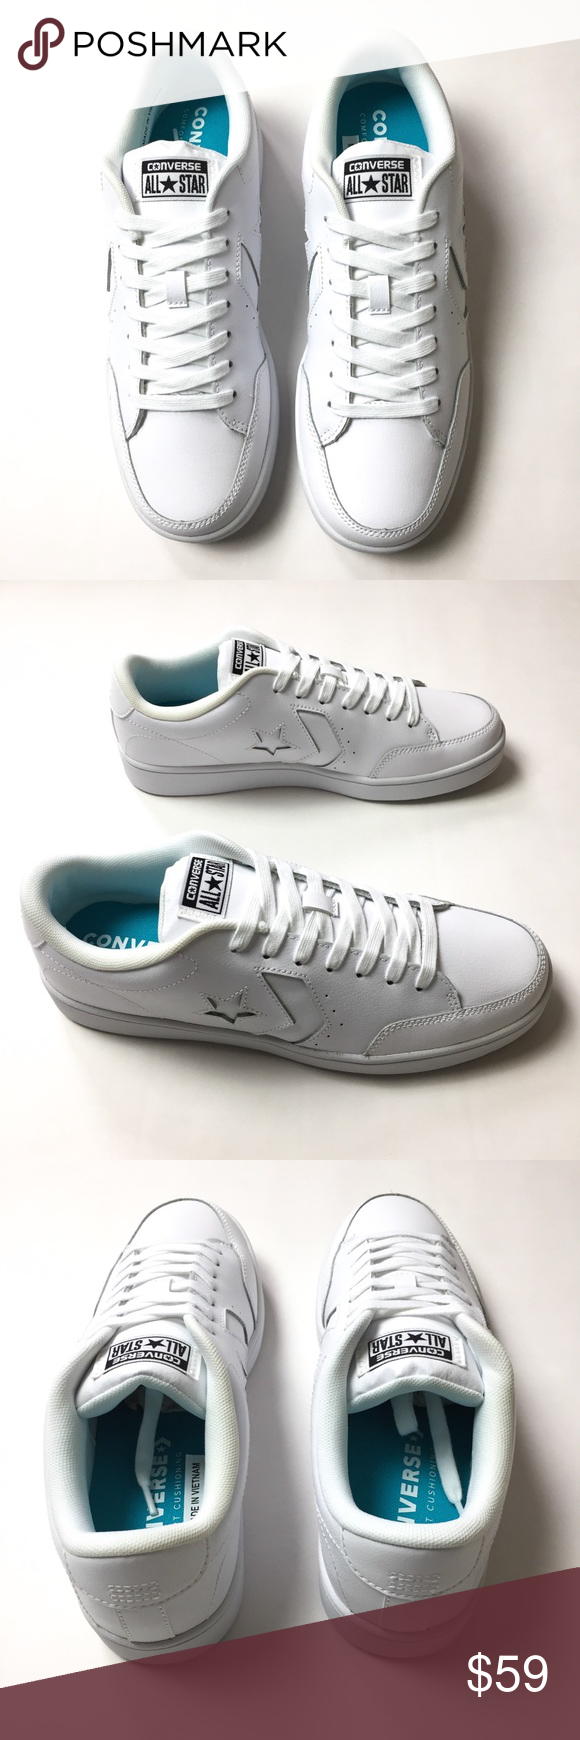 f4b0e9d926c9e1 Converse Star Court Ox Sneakers (Unisex) White leather sneakers. Unisex.  Round toe